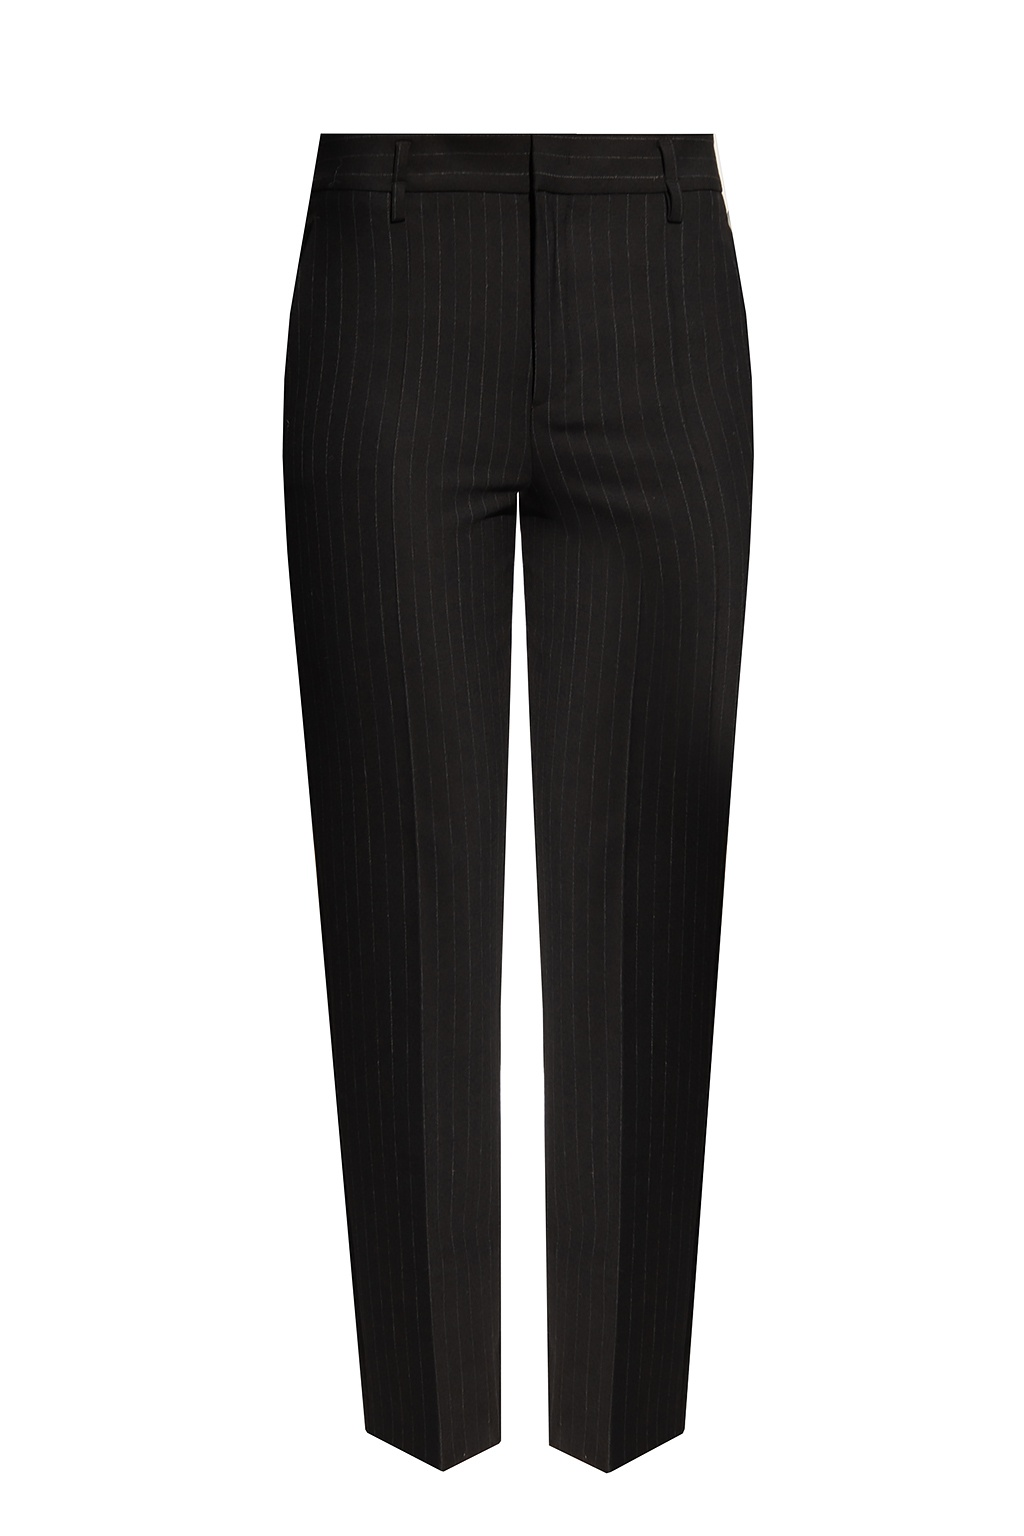 Red Valentino Patterned pleat-front trousers